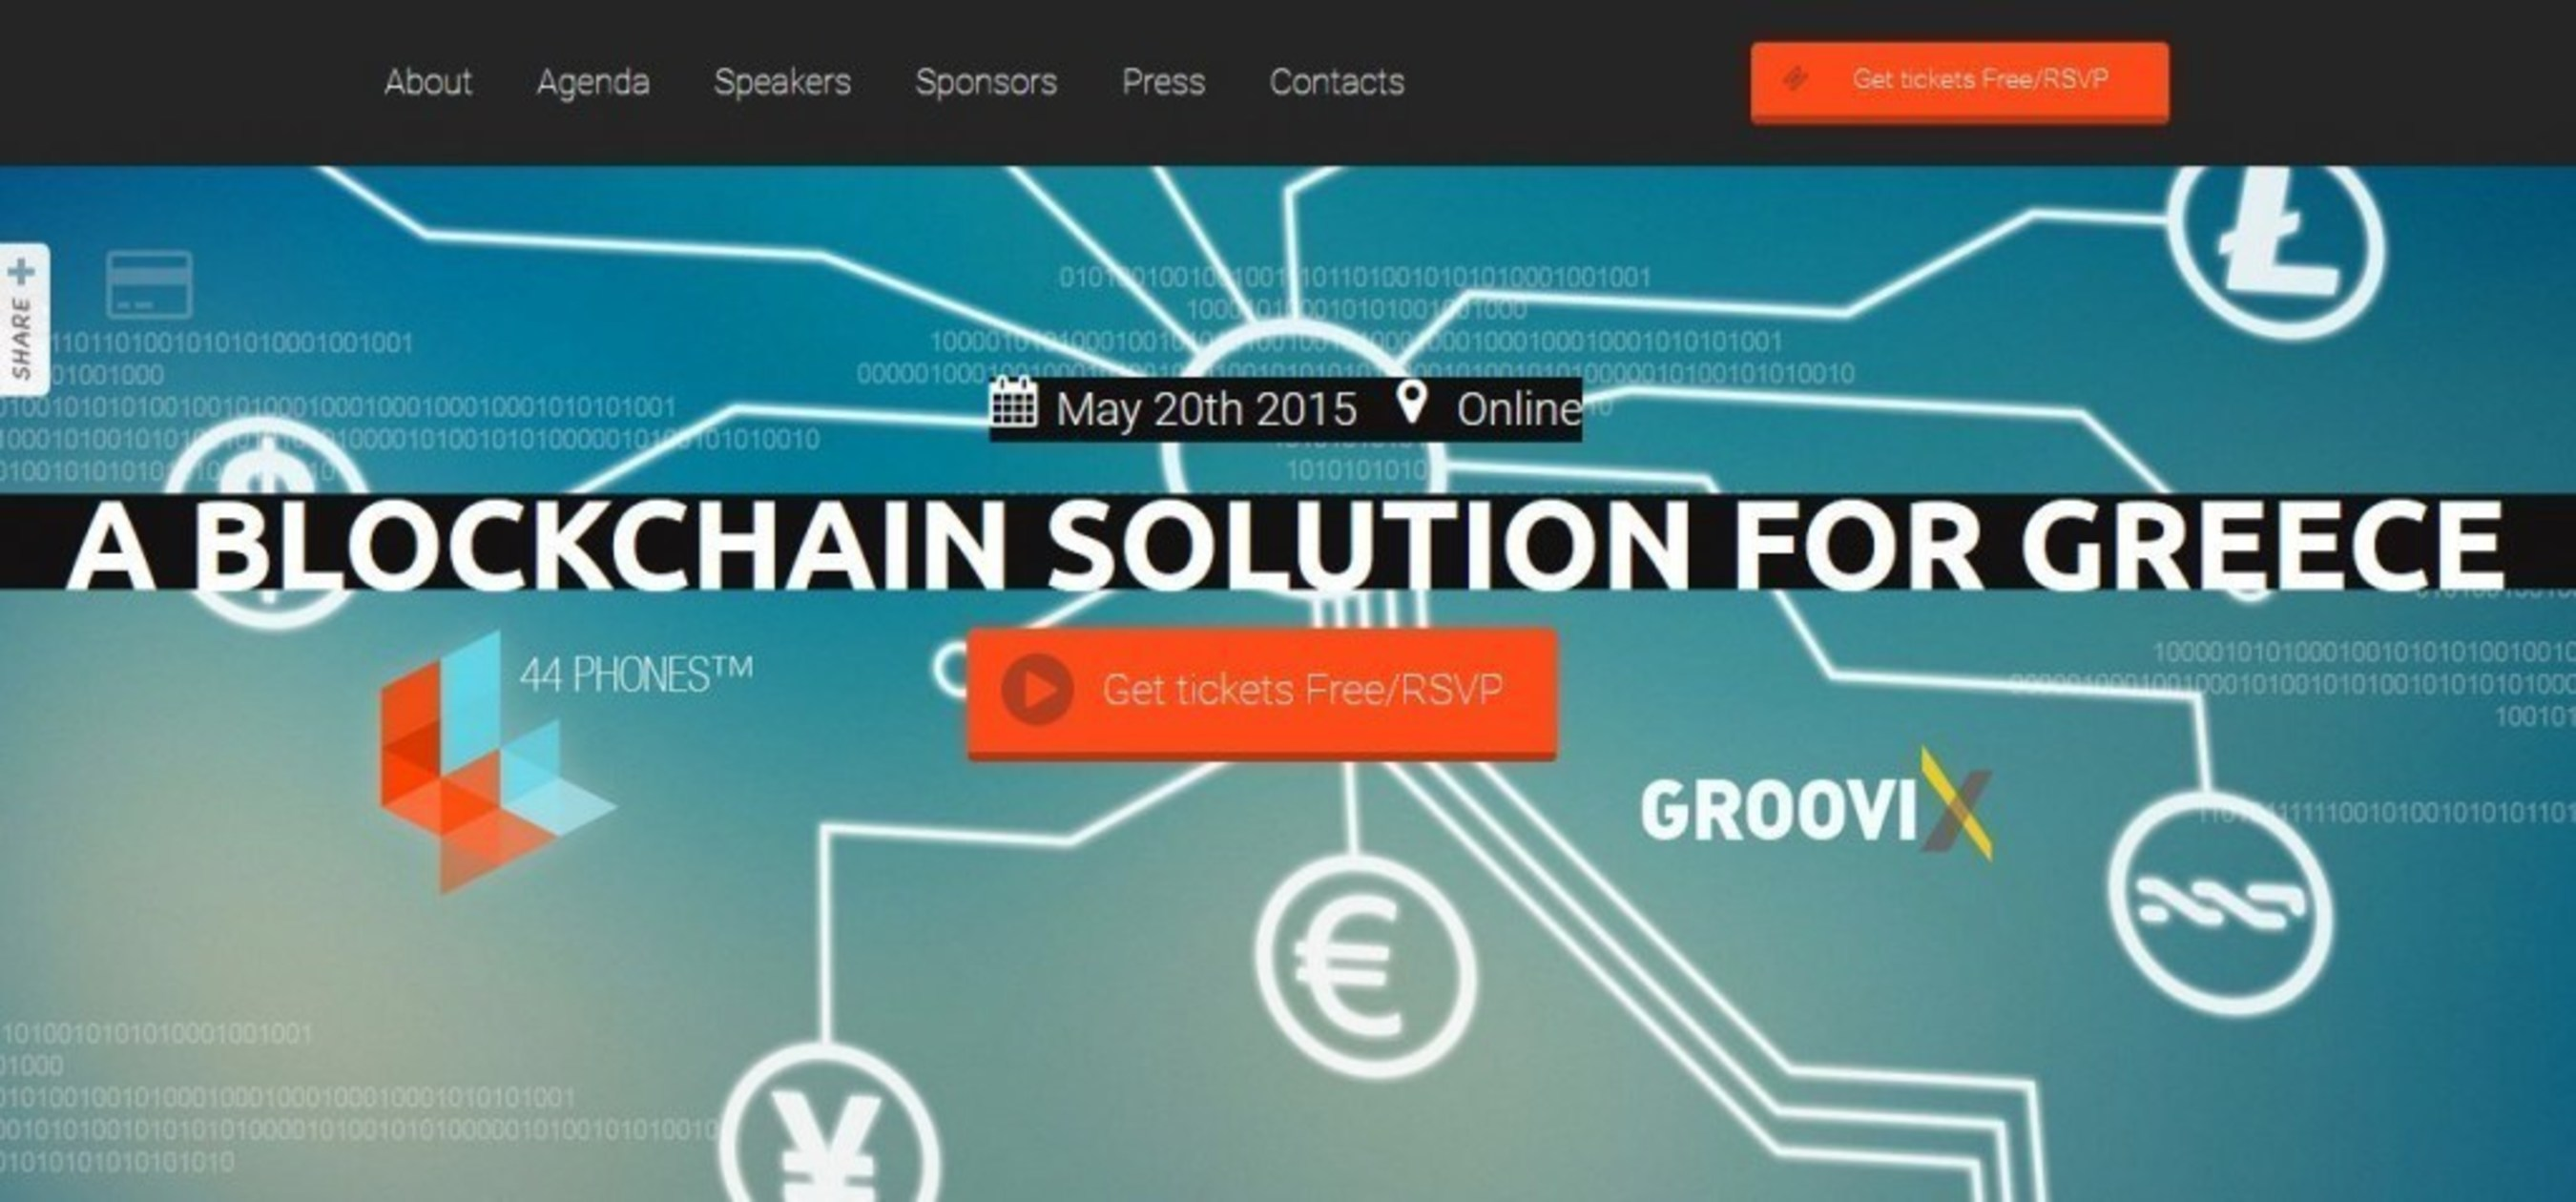 Coinstructors Proposes Disruptive 'Blockchain Solution For Greece' Amid Eurozone Crisis; is Bitcoin 2.0 The Answer